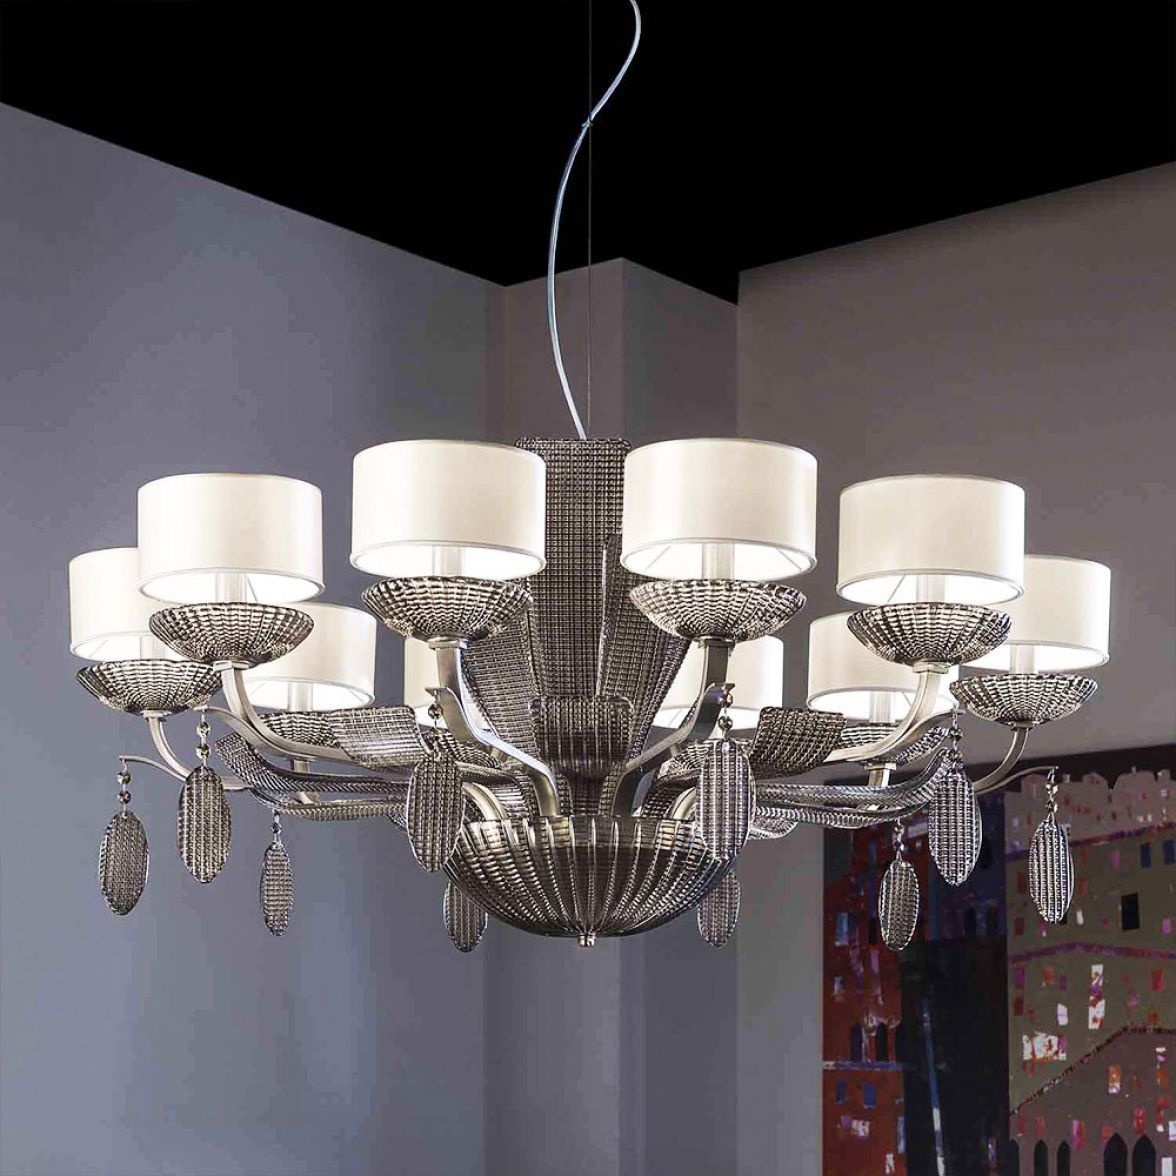 Isbel chandelier